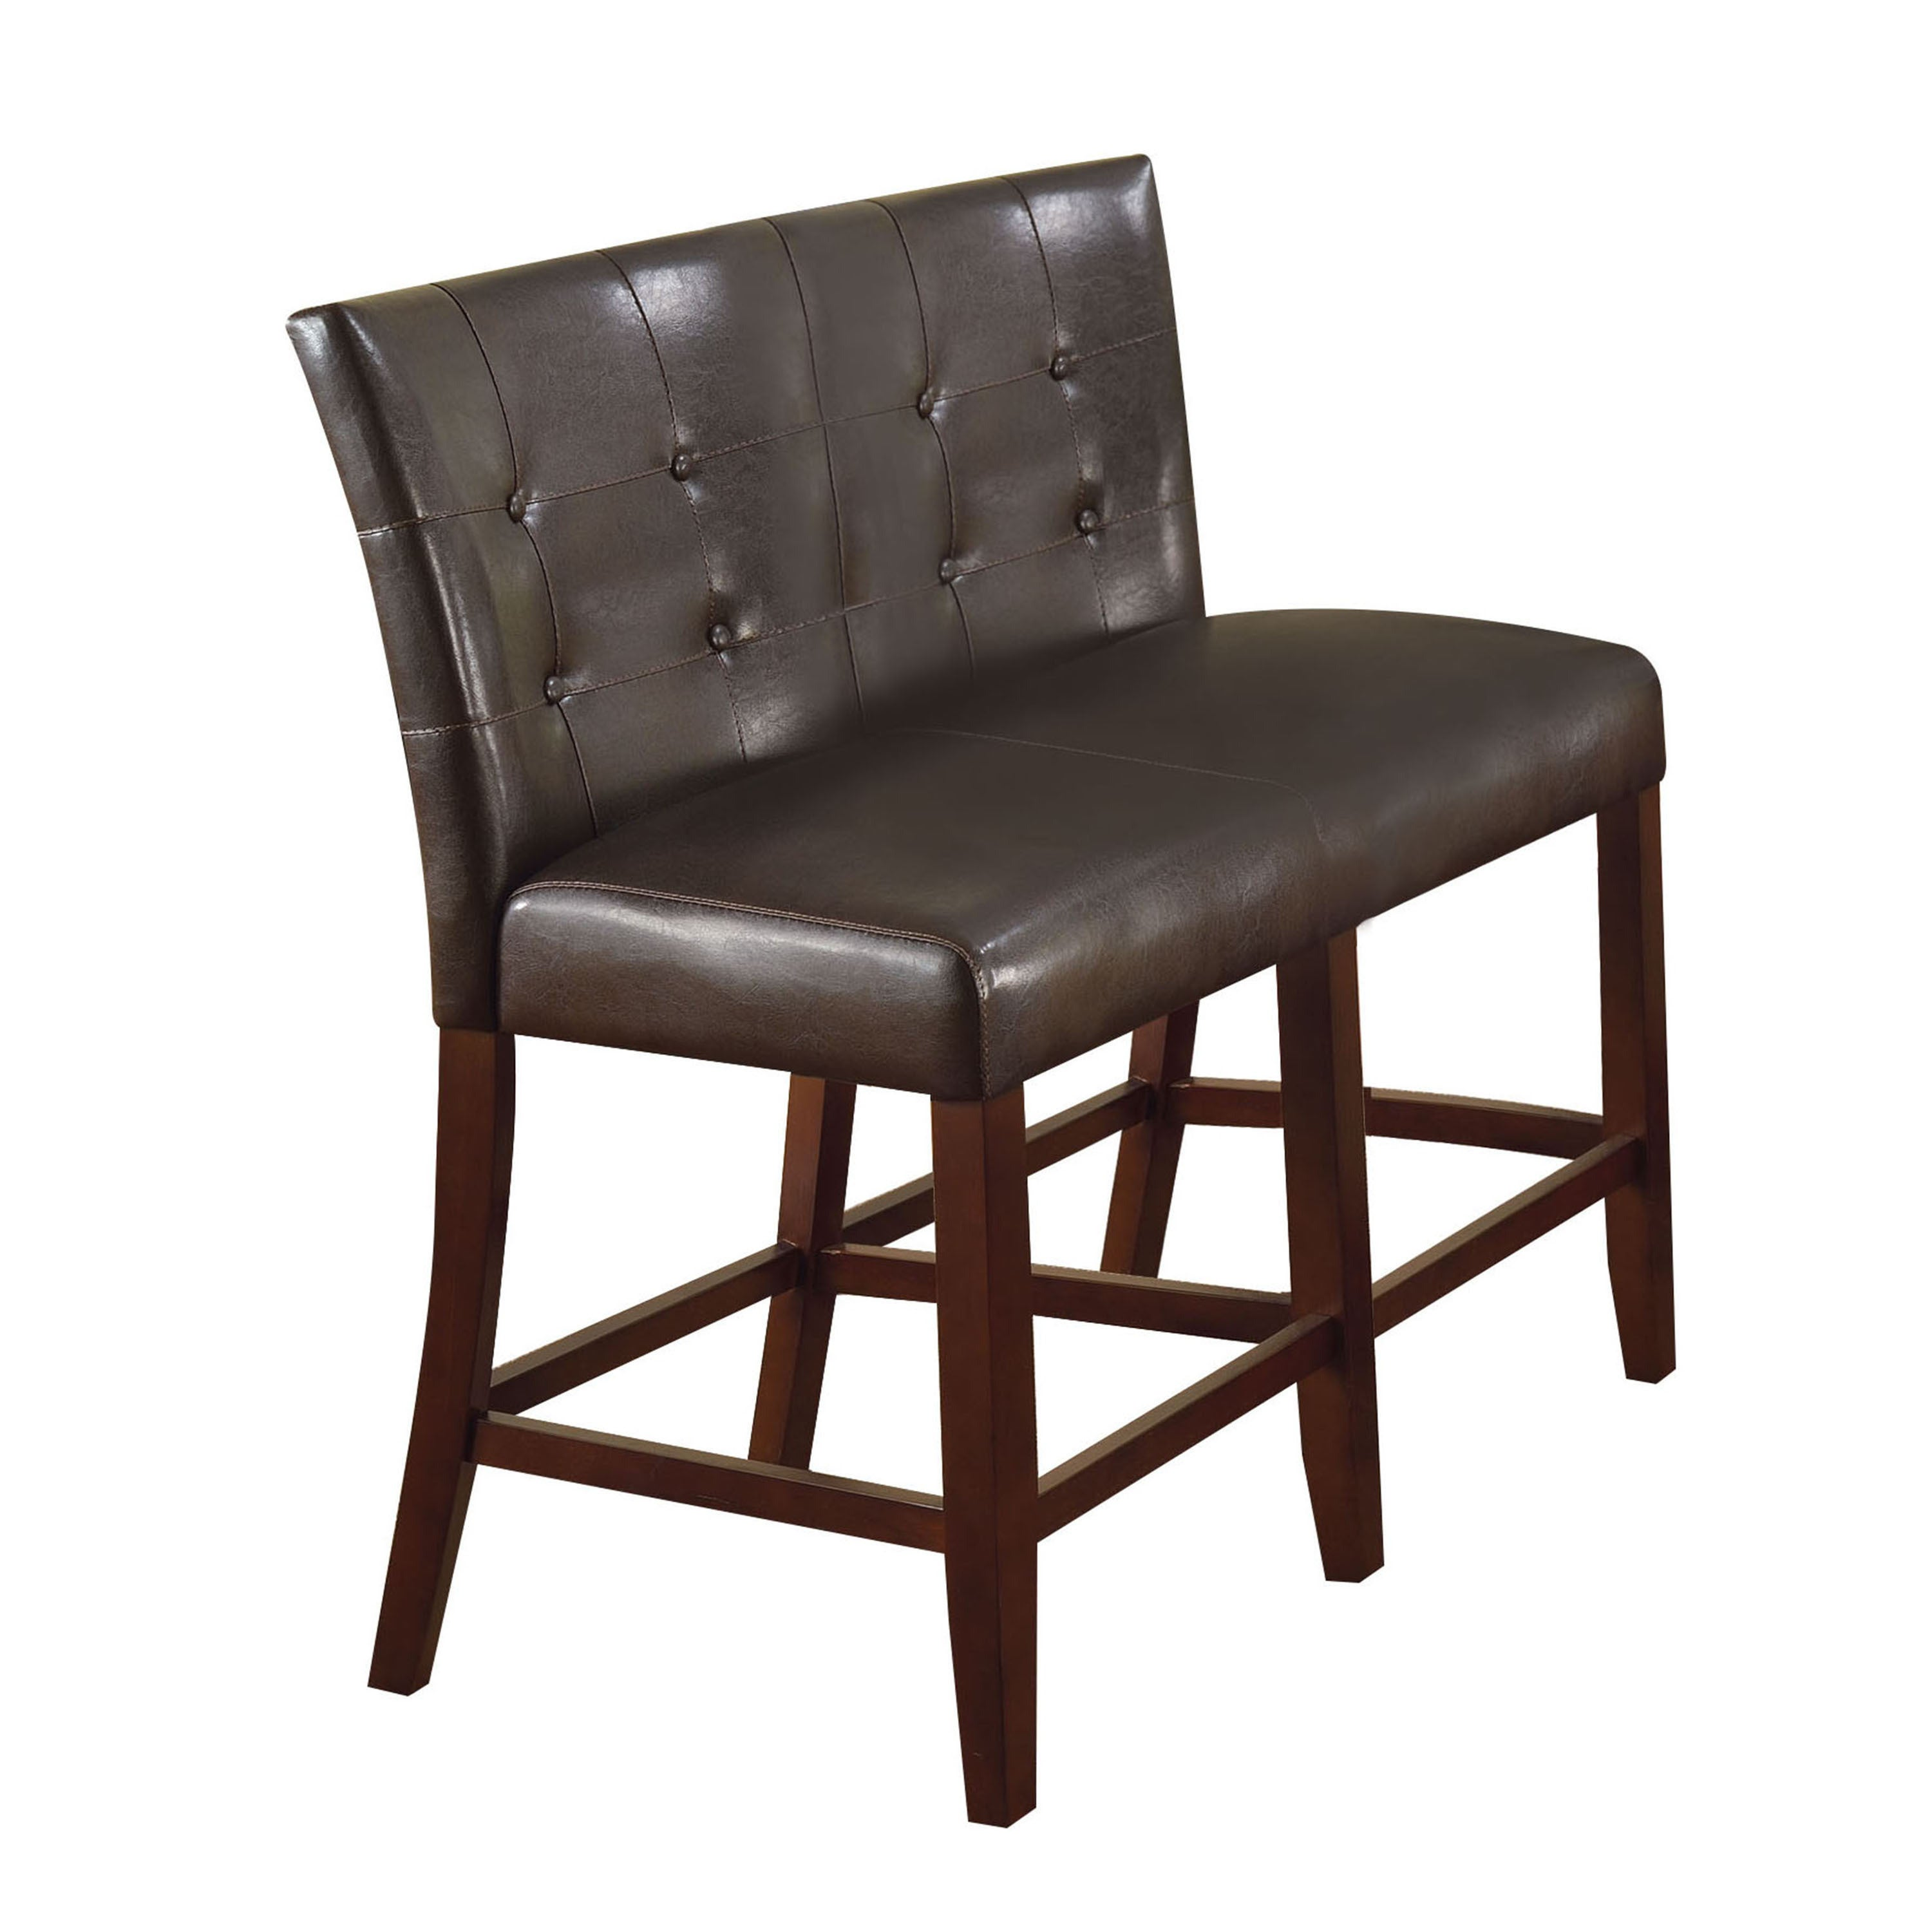 ACME Furniture Bravo Espresso Counter-height Double Chair...